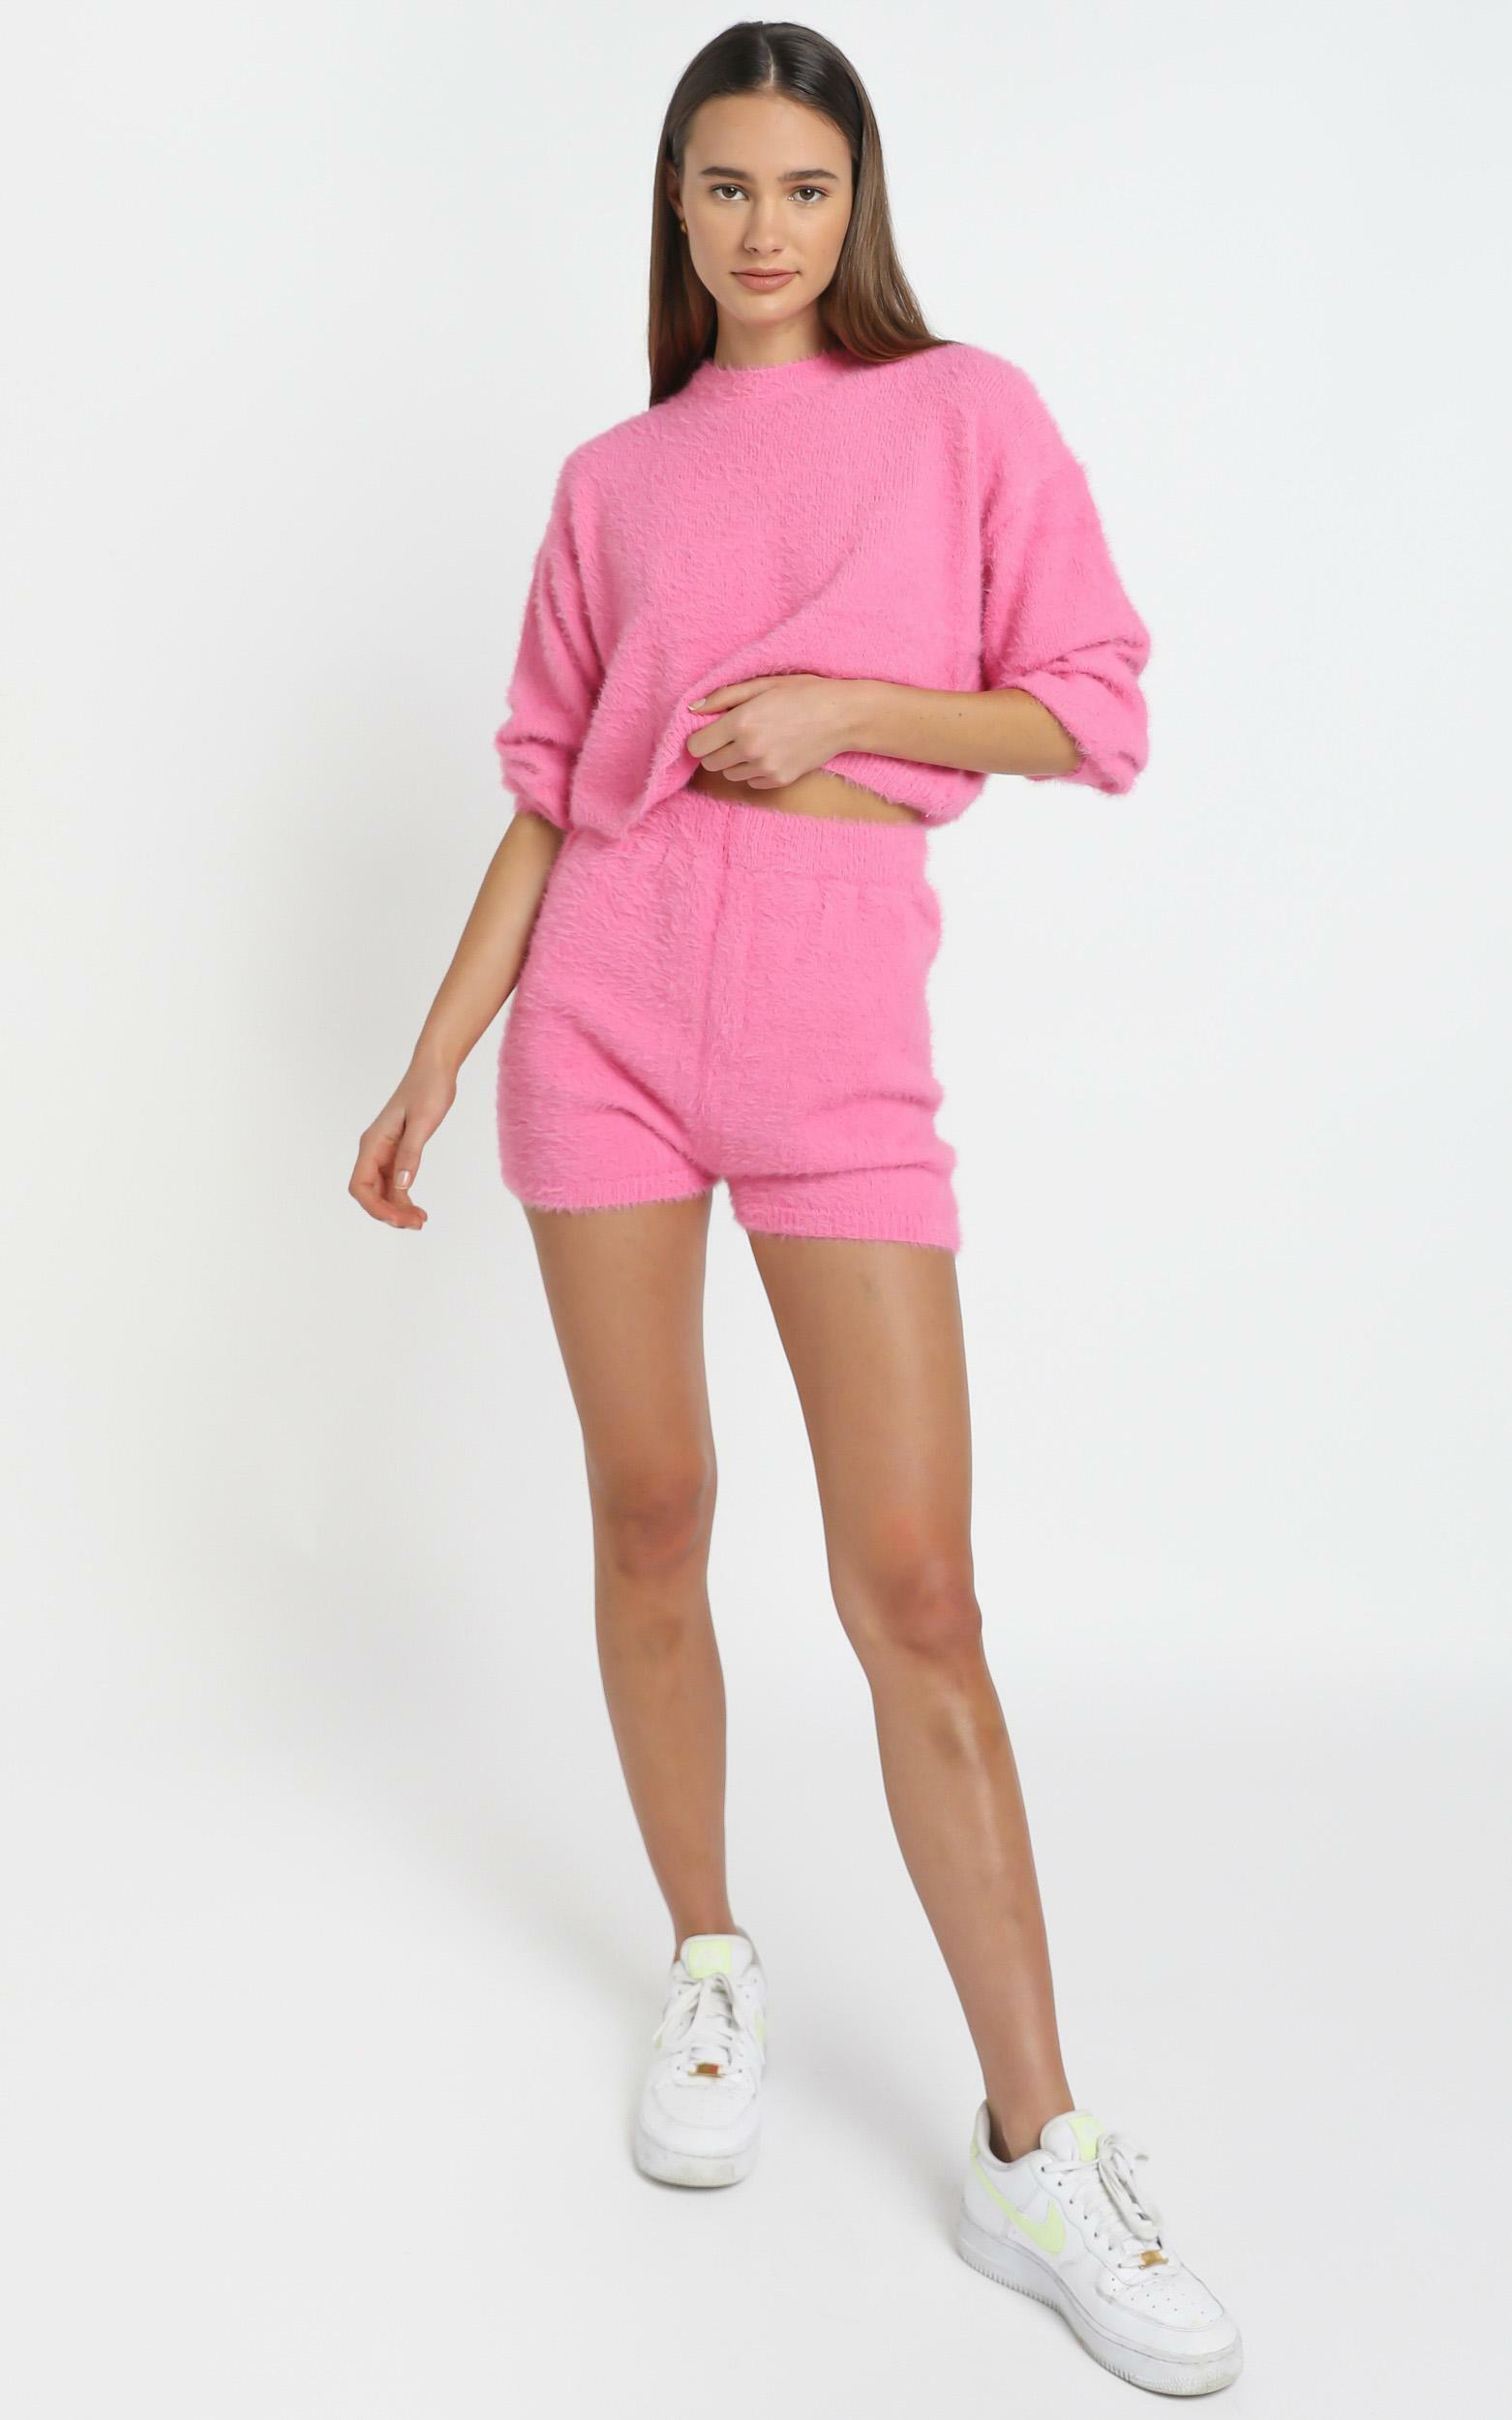 Loretta Fluffy Knit Two Piece Set in Hot Pink - L/XL, Pink, hi-res image number null